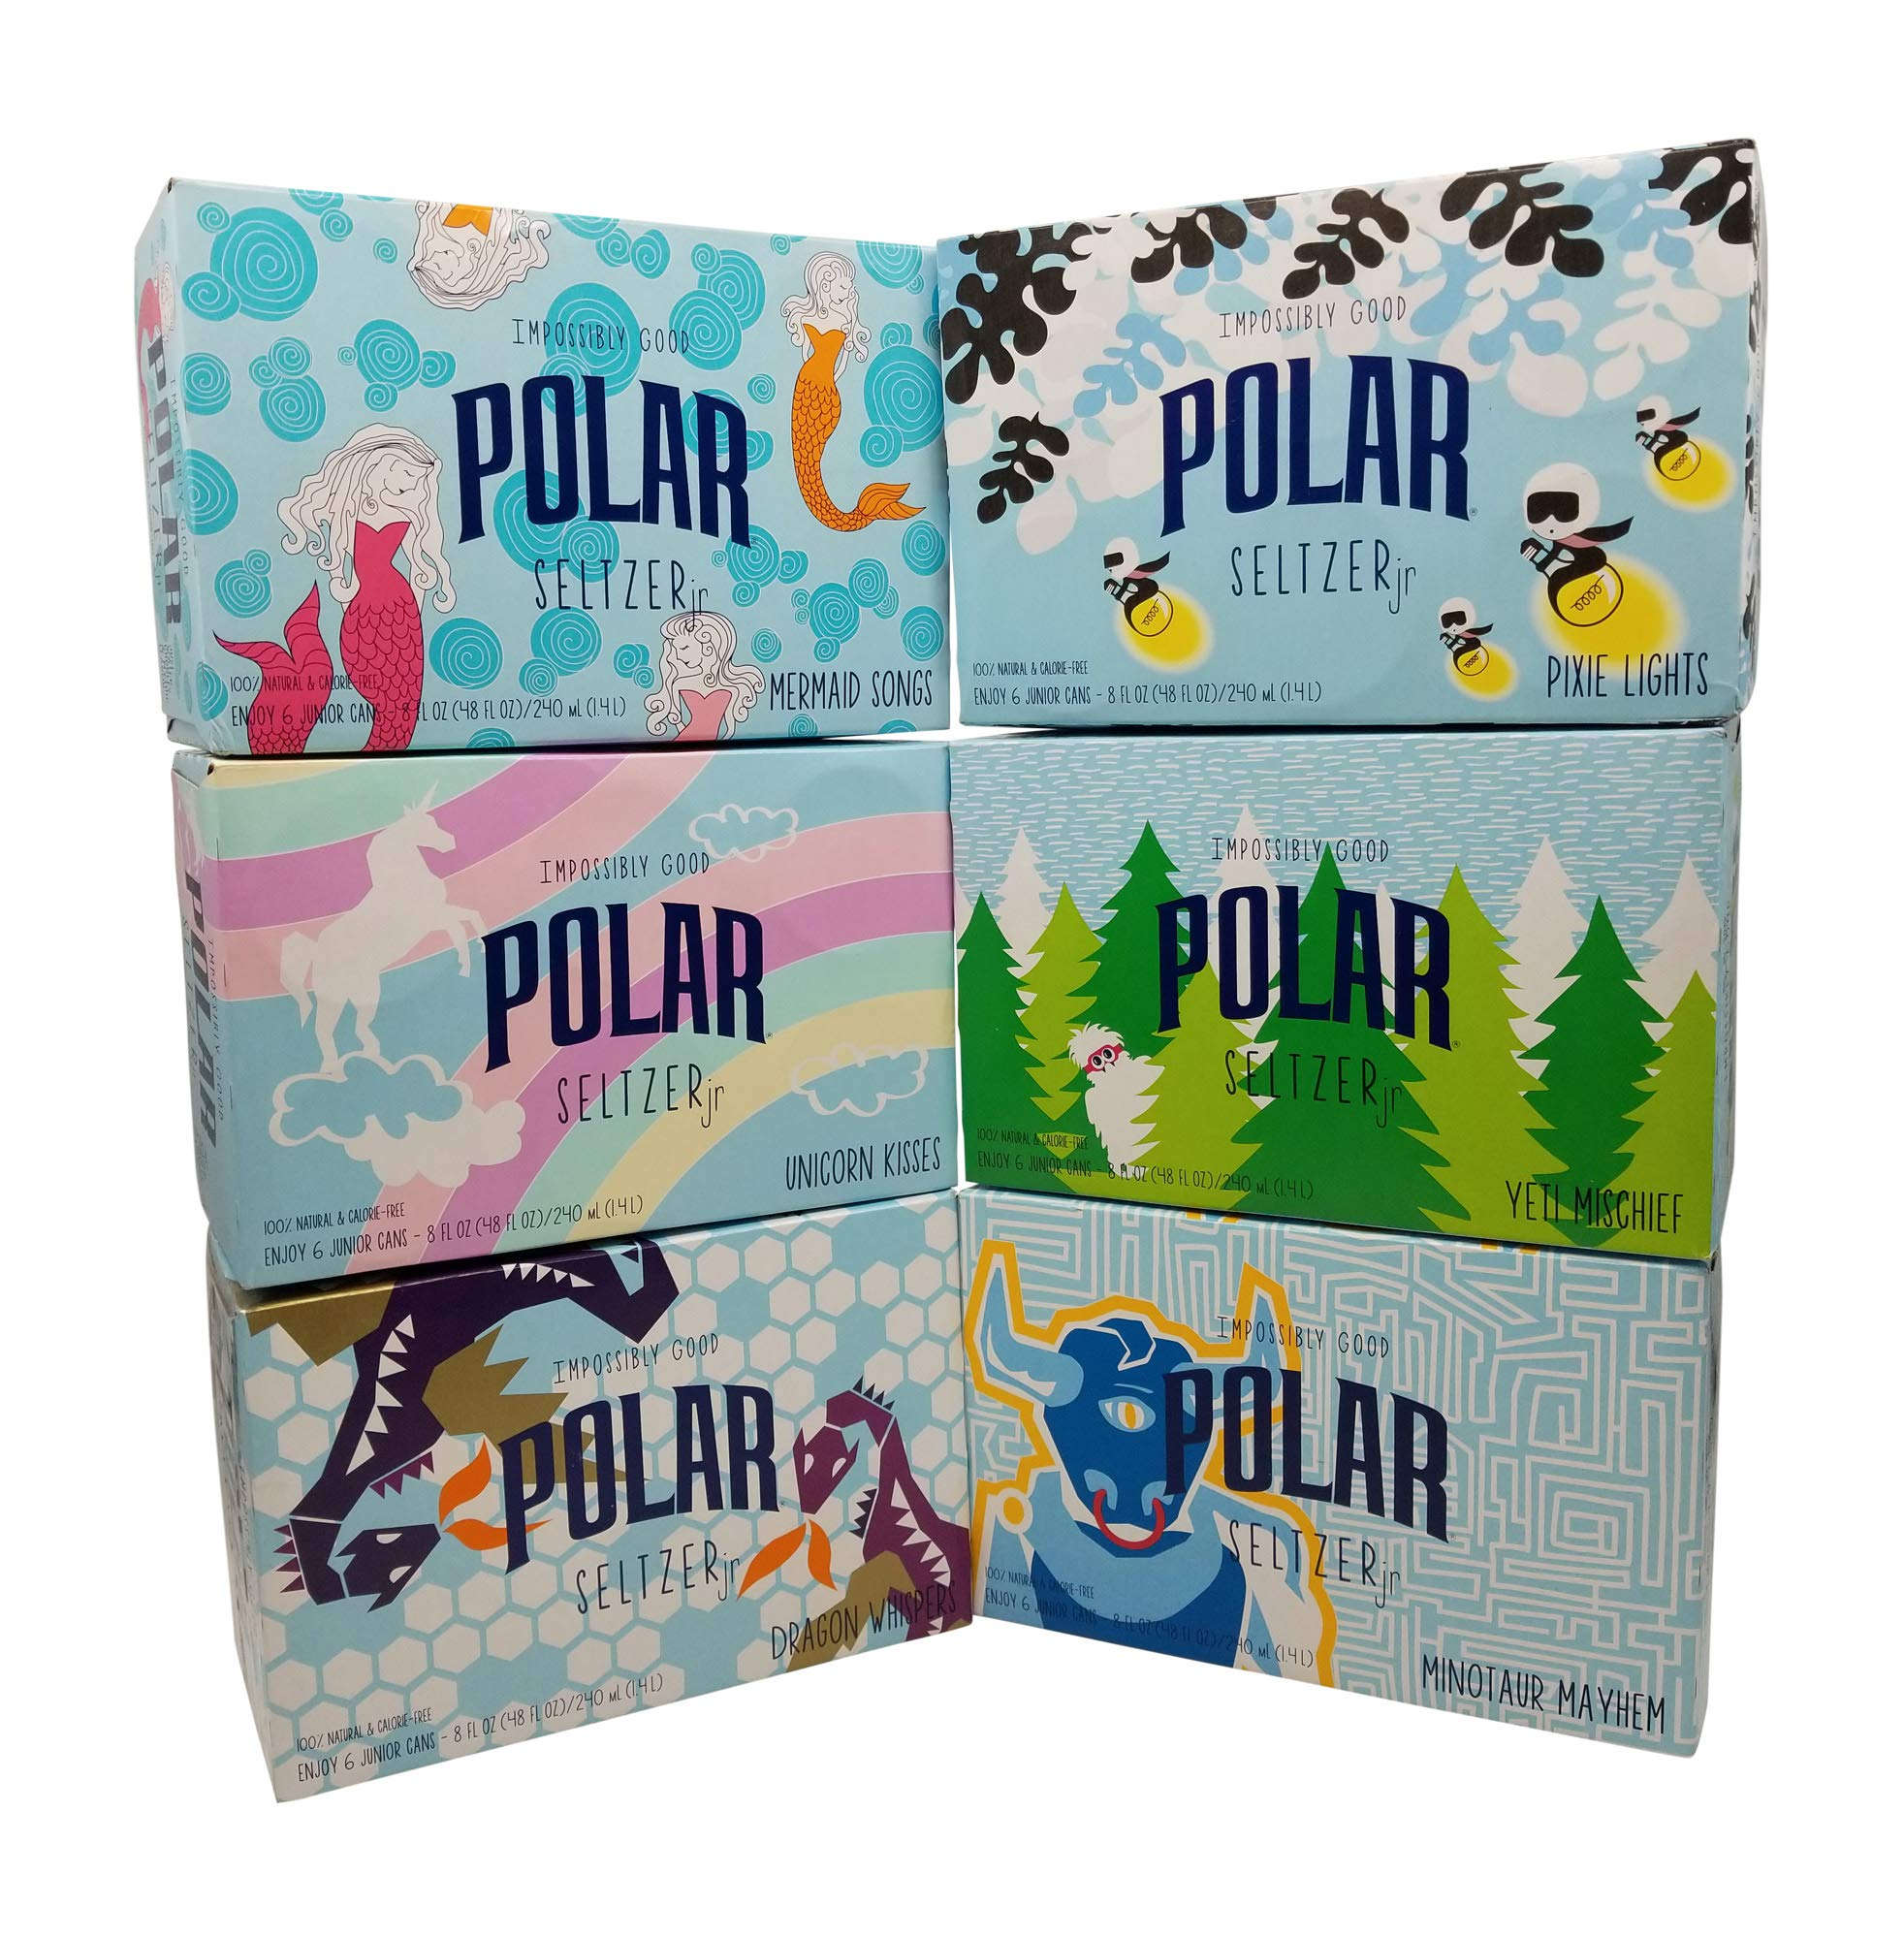 POLAR 100% Natural Seltzer Jr - 36 ct Variety Pack - The Impossibly Good Collection (Unicorn Kisses, Yeti Mischief, Mermaid Songs, Dragon Whispers, Minotaur Mayhem, Pixie Lights)